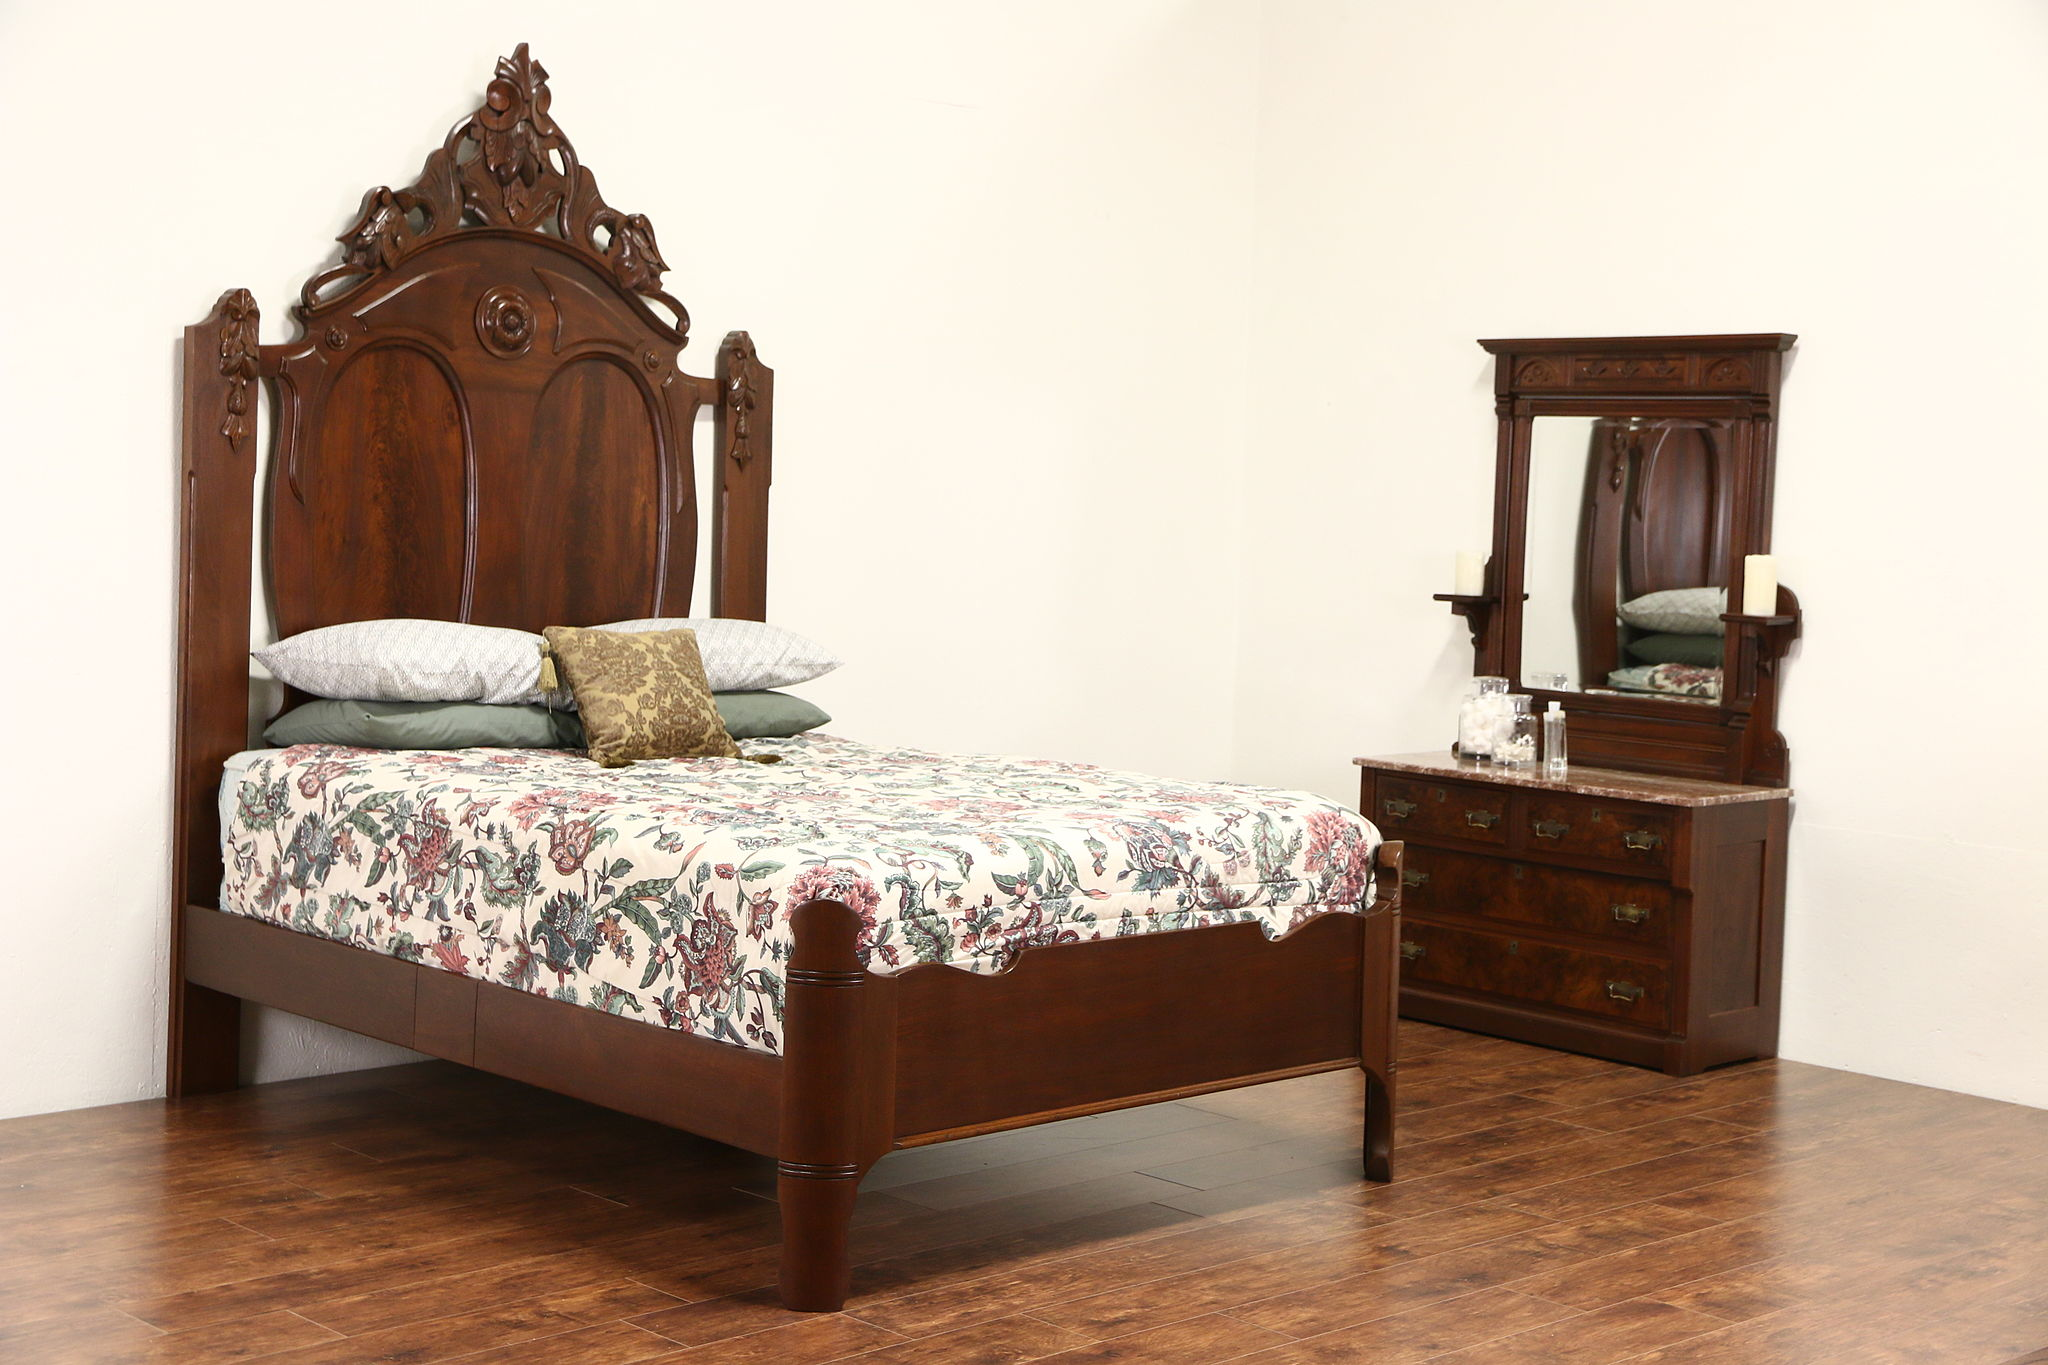 Antique Bed: Victorian 1860's Antique Carved Walnut Queen Size